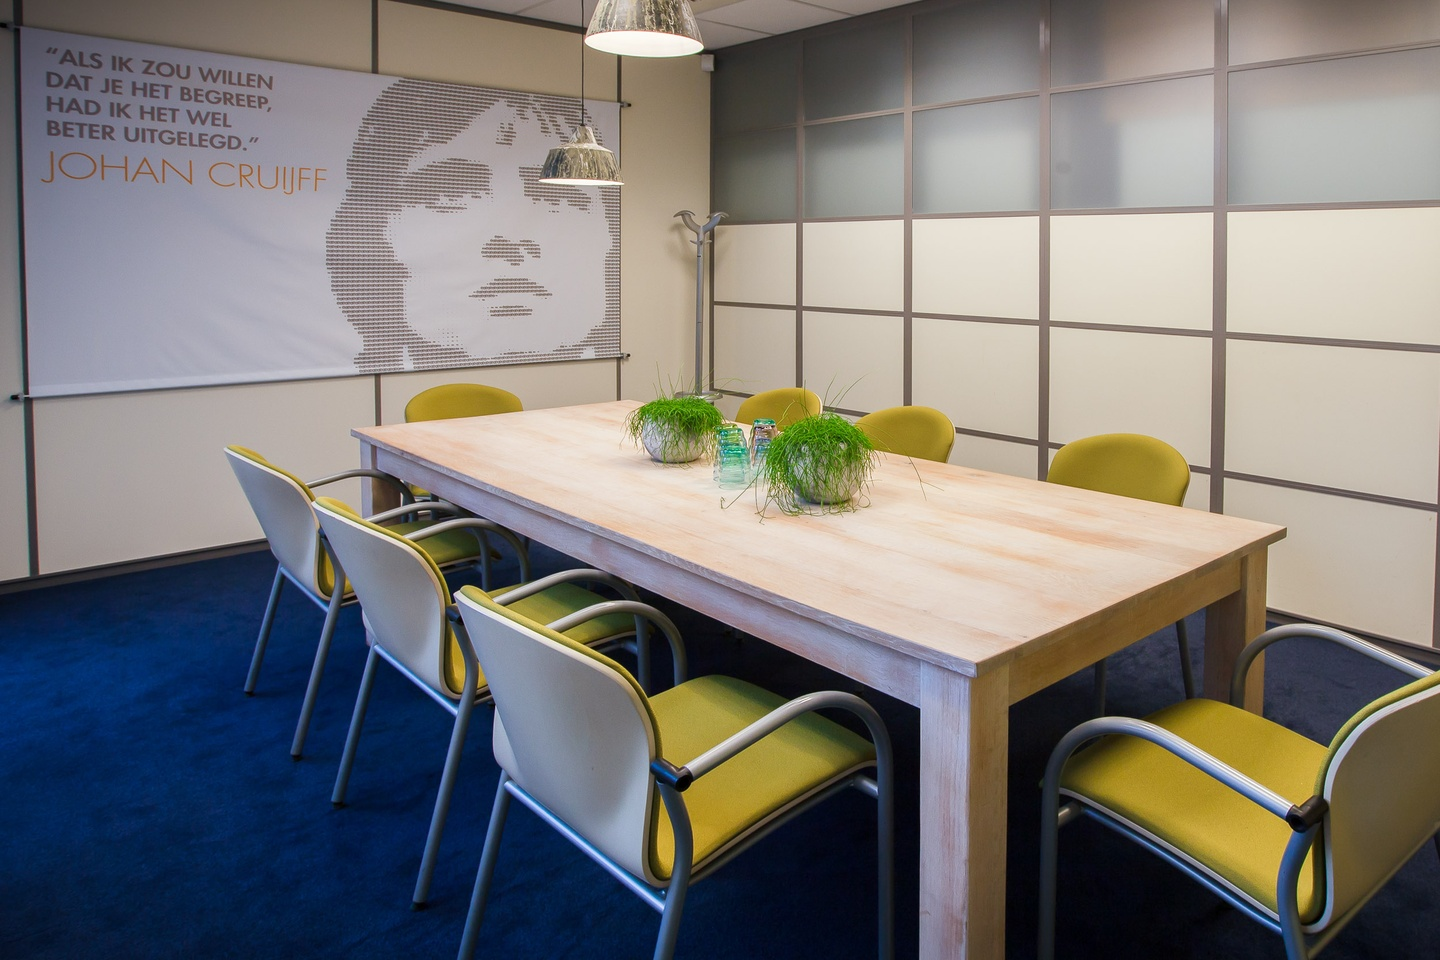 Rotterdam conference rooms Meeting room Meetz - Johan Cruijff image 3